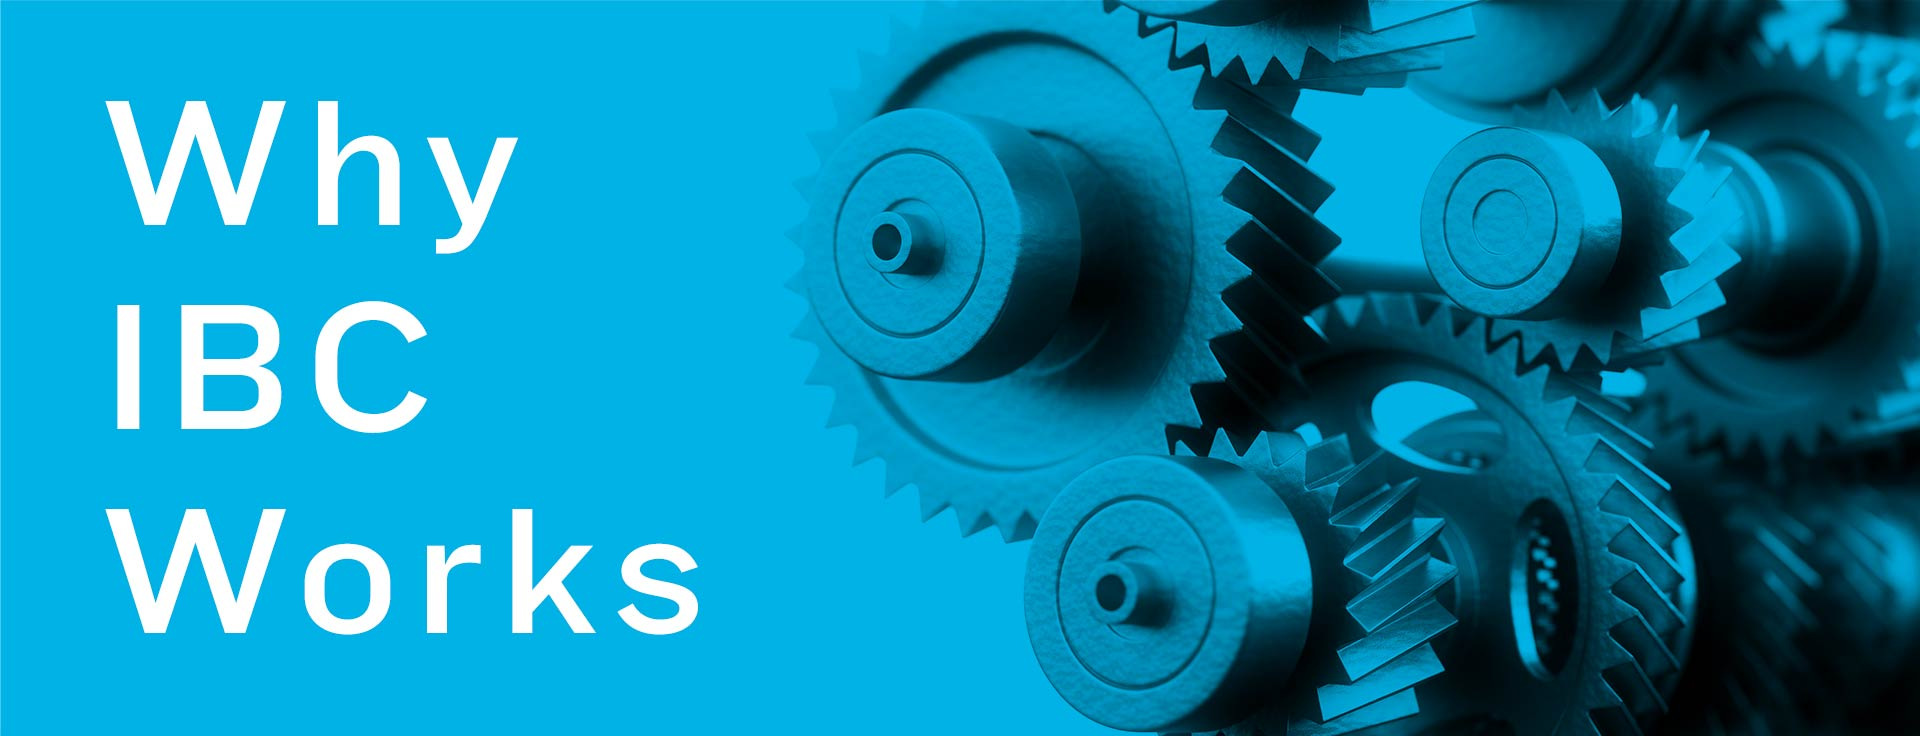 Gears turning (Why IBC Works)